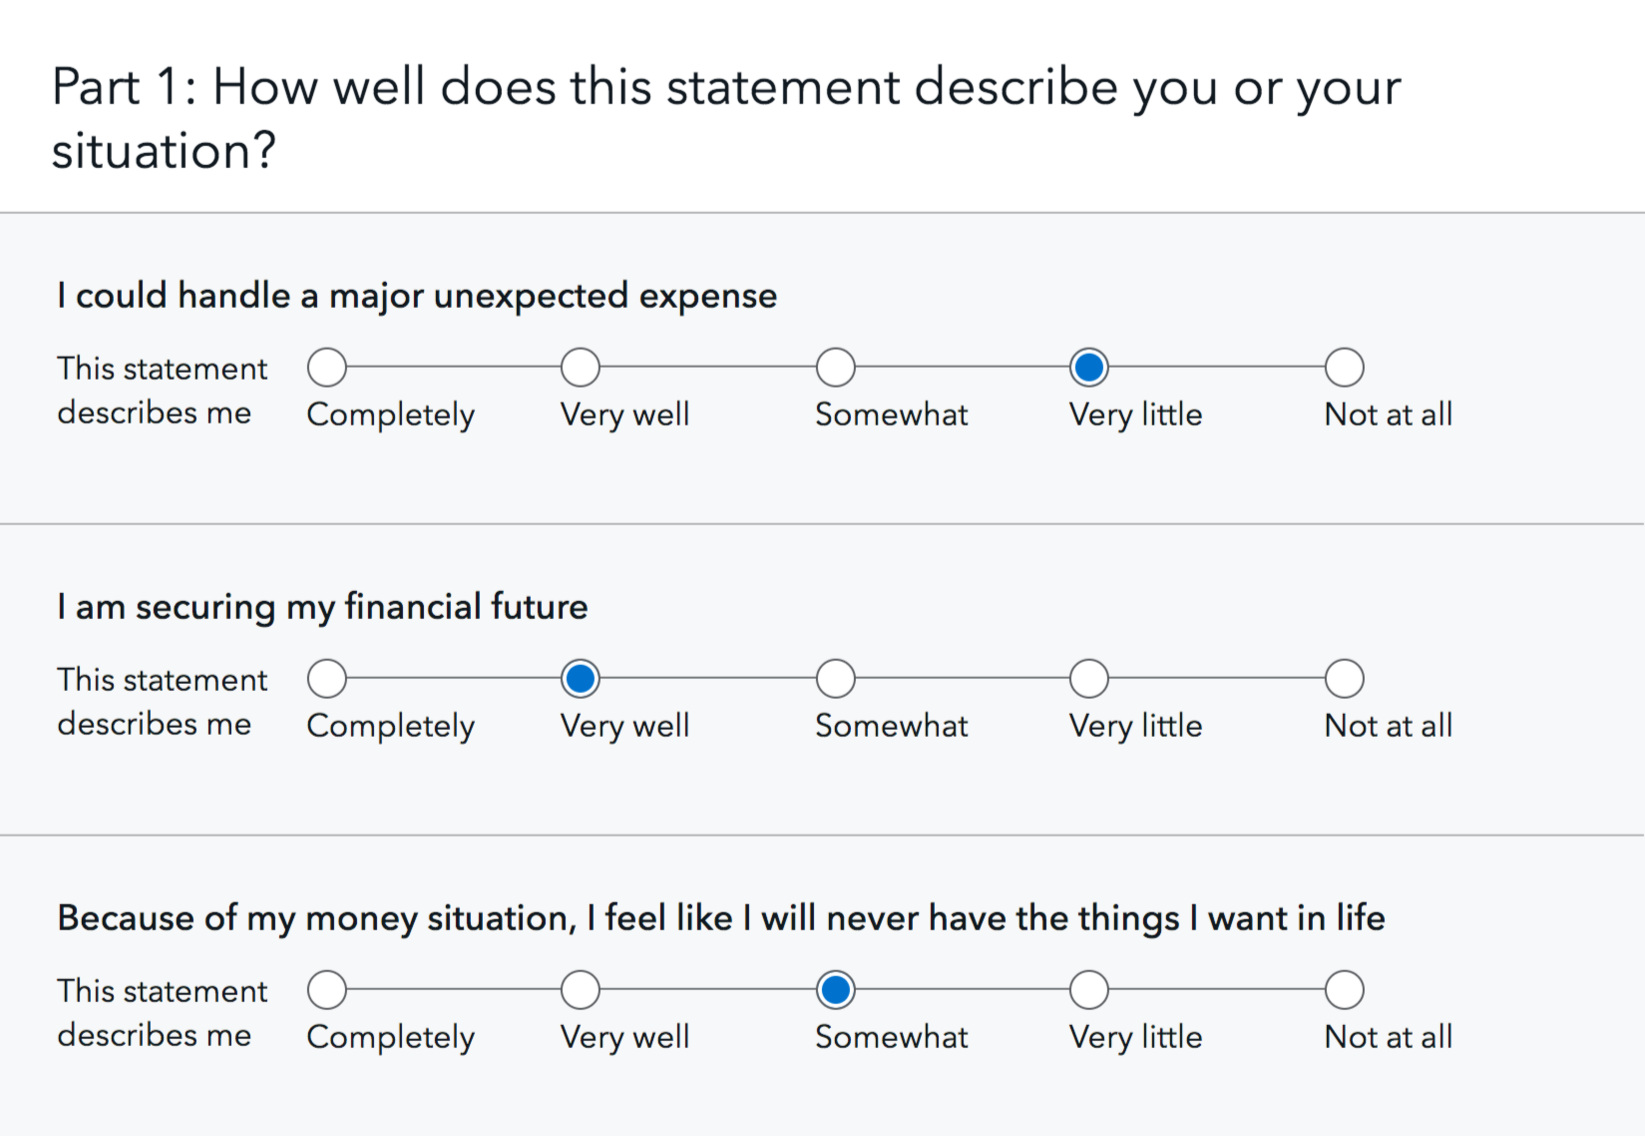 Measuring and Visualizing Financial Well-Being — Amy Cesal